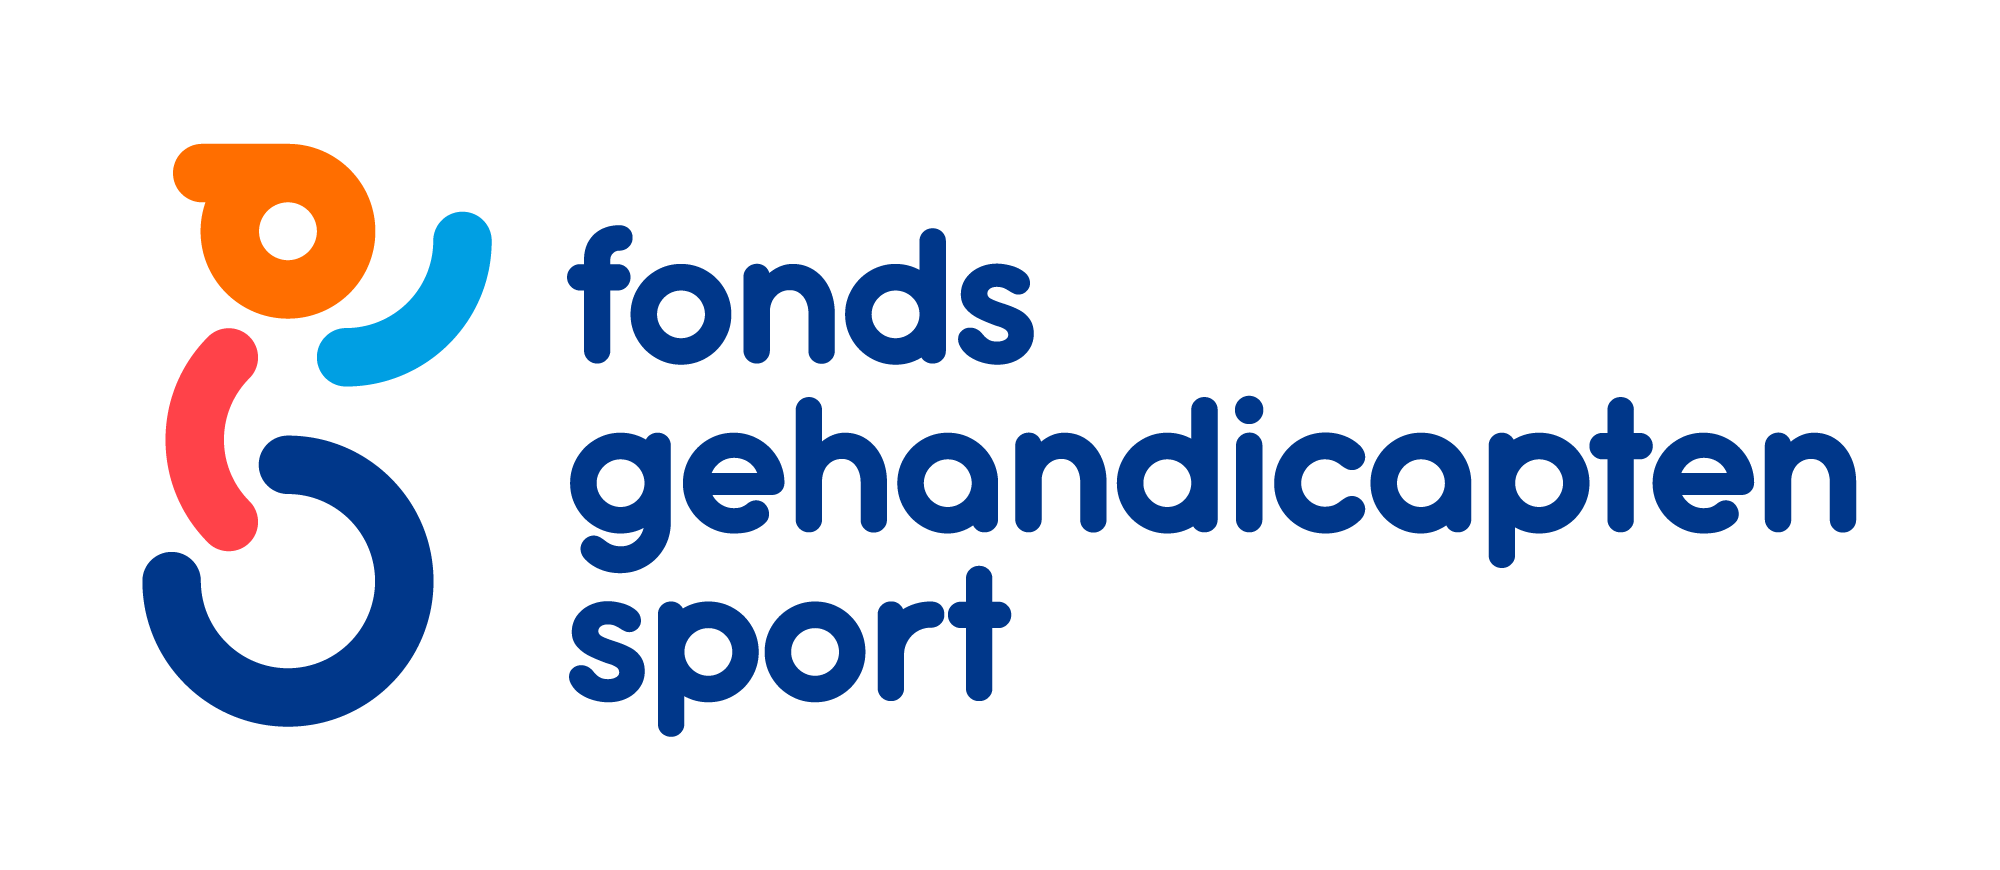 Digitale collecte fonds gehandicapten sport